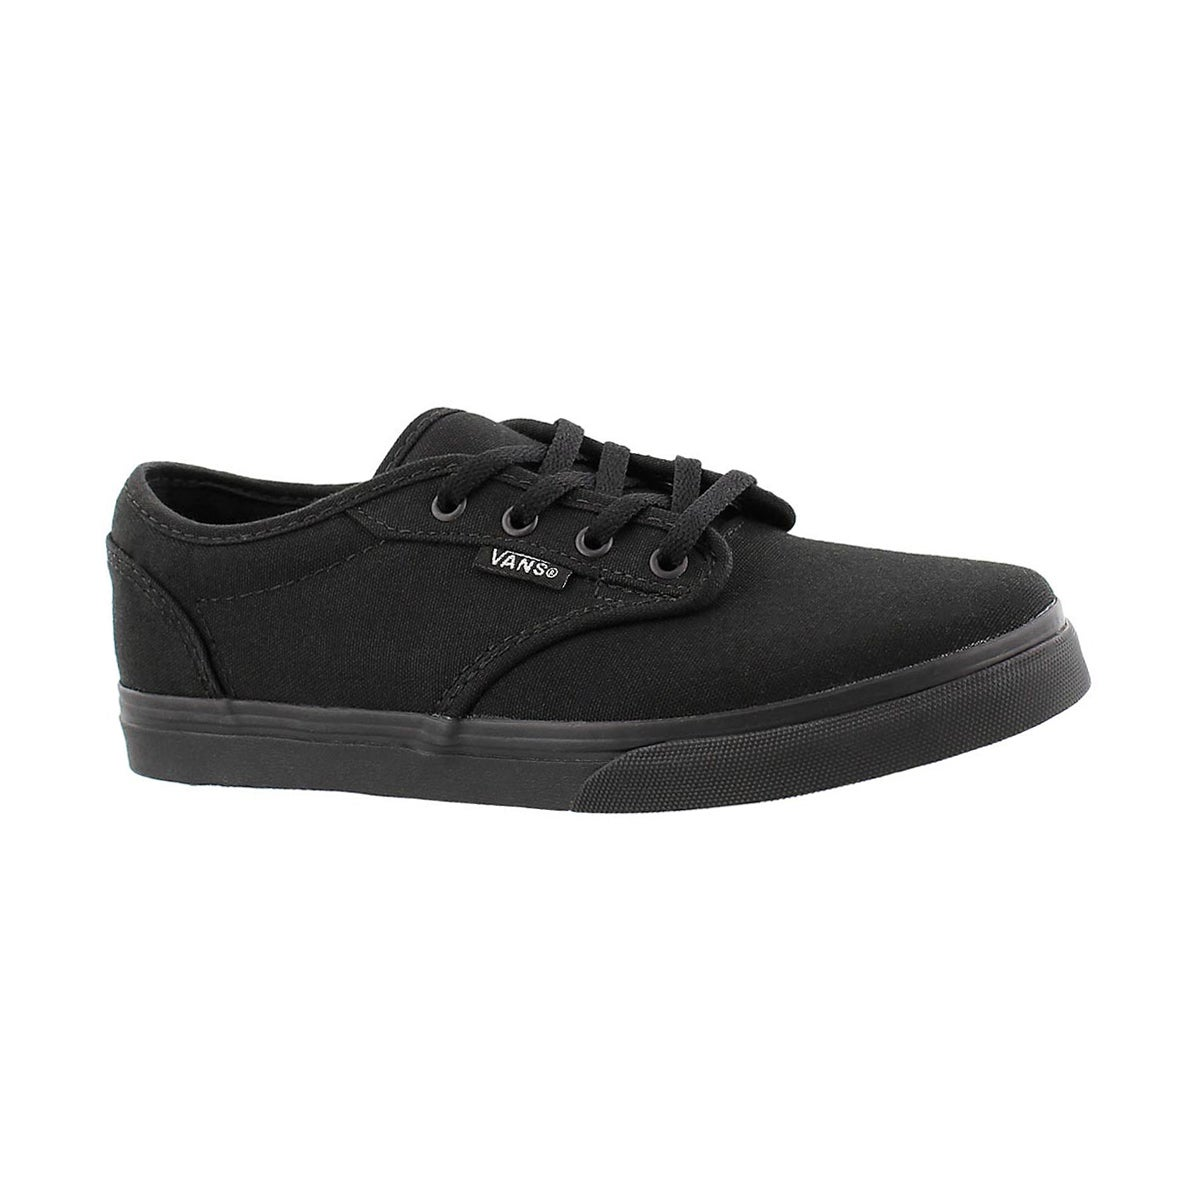 Grls Atwood Low black lace up sneaker